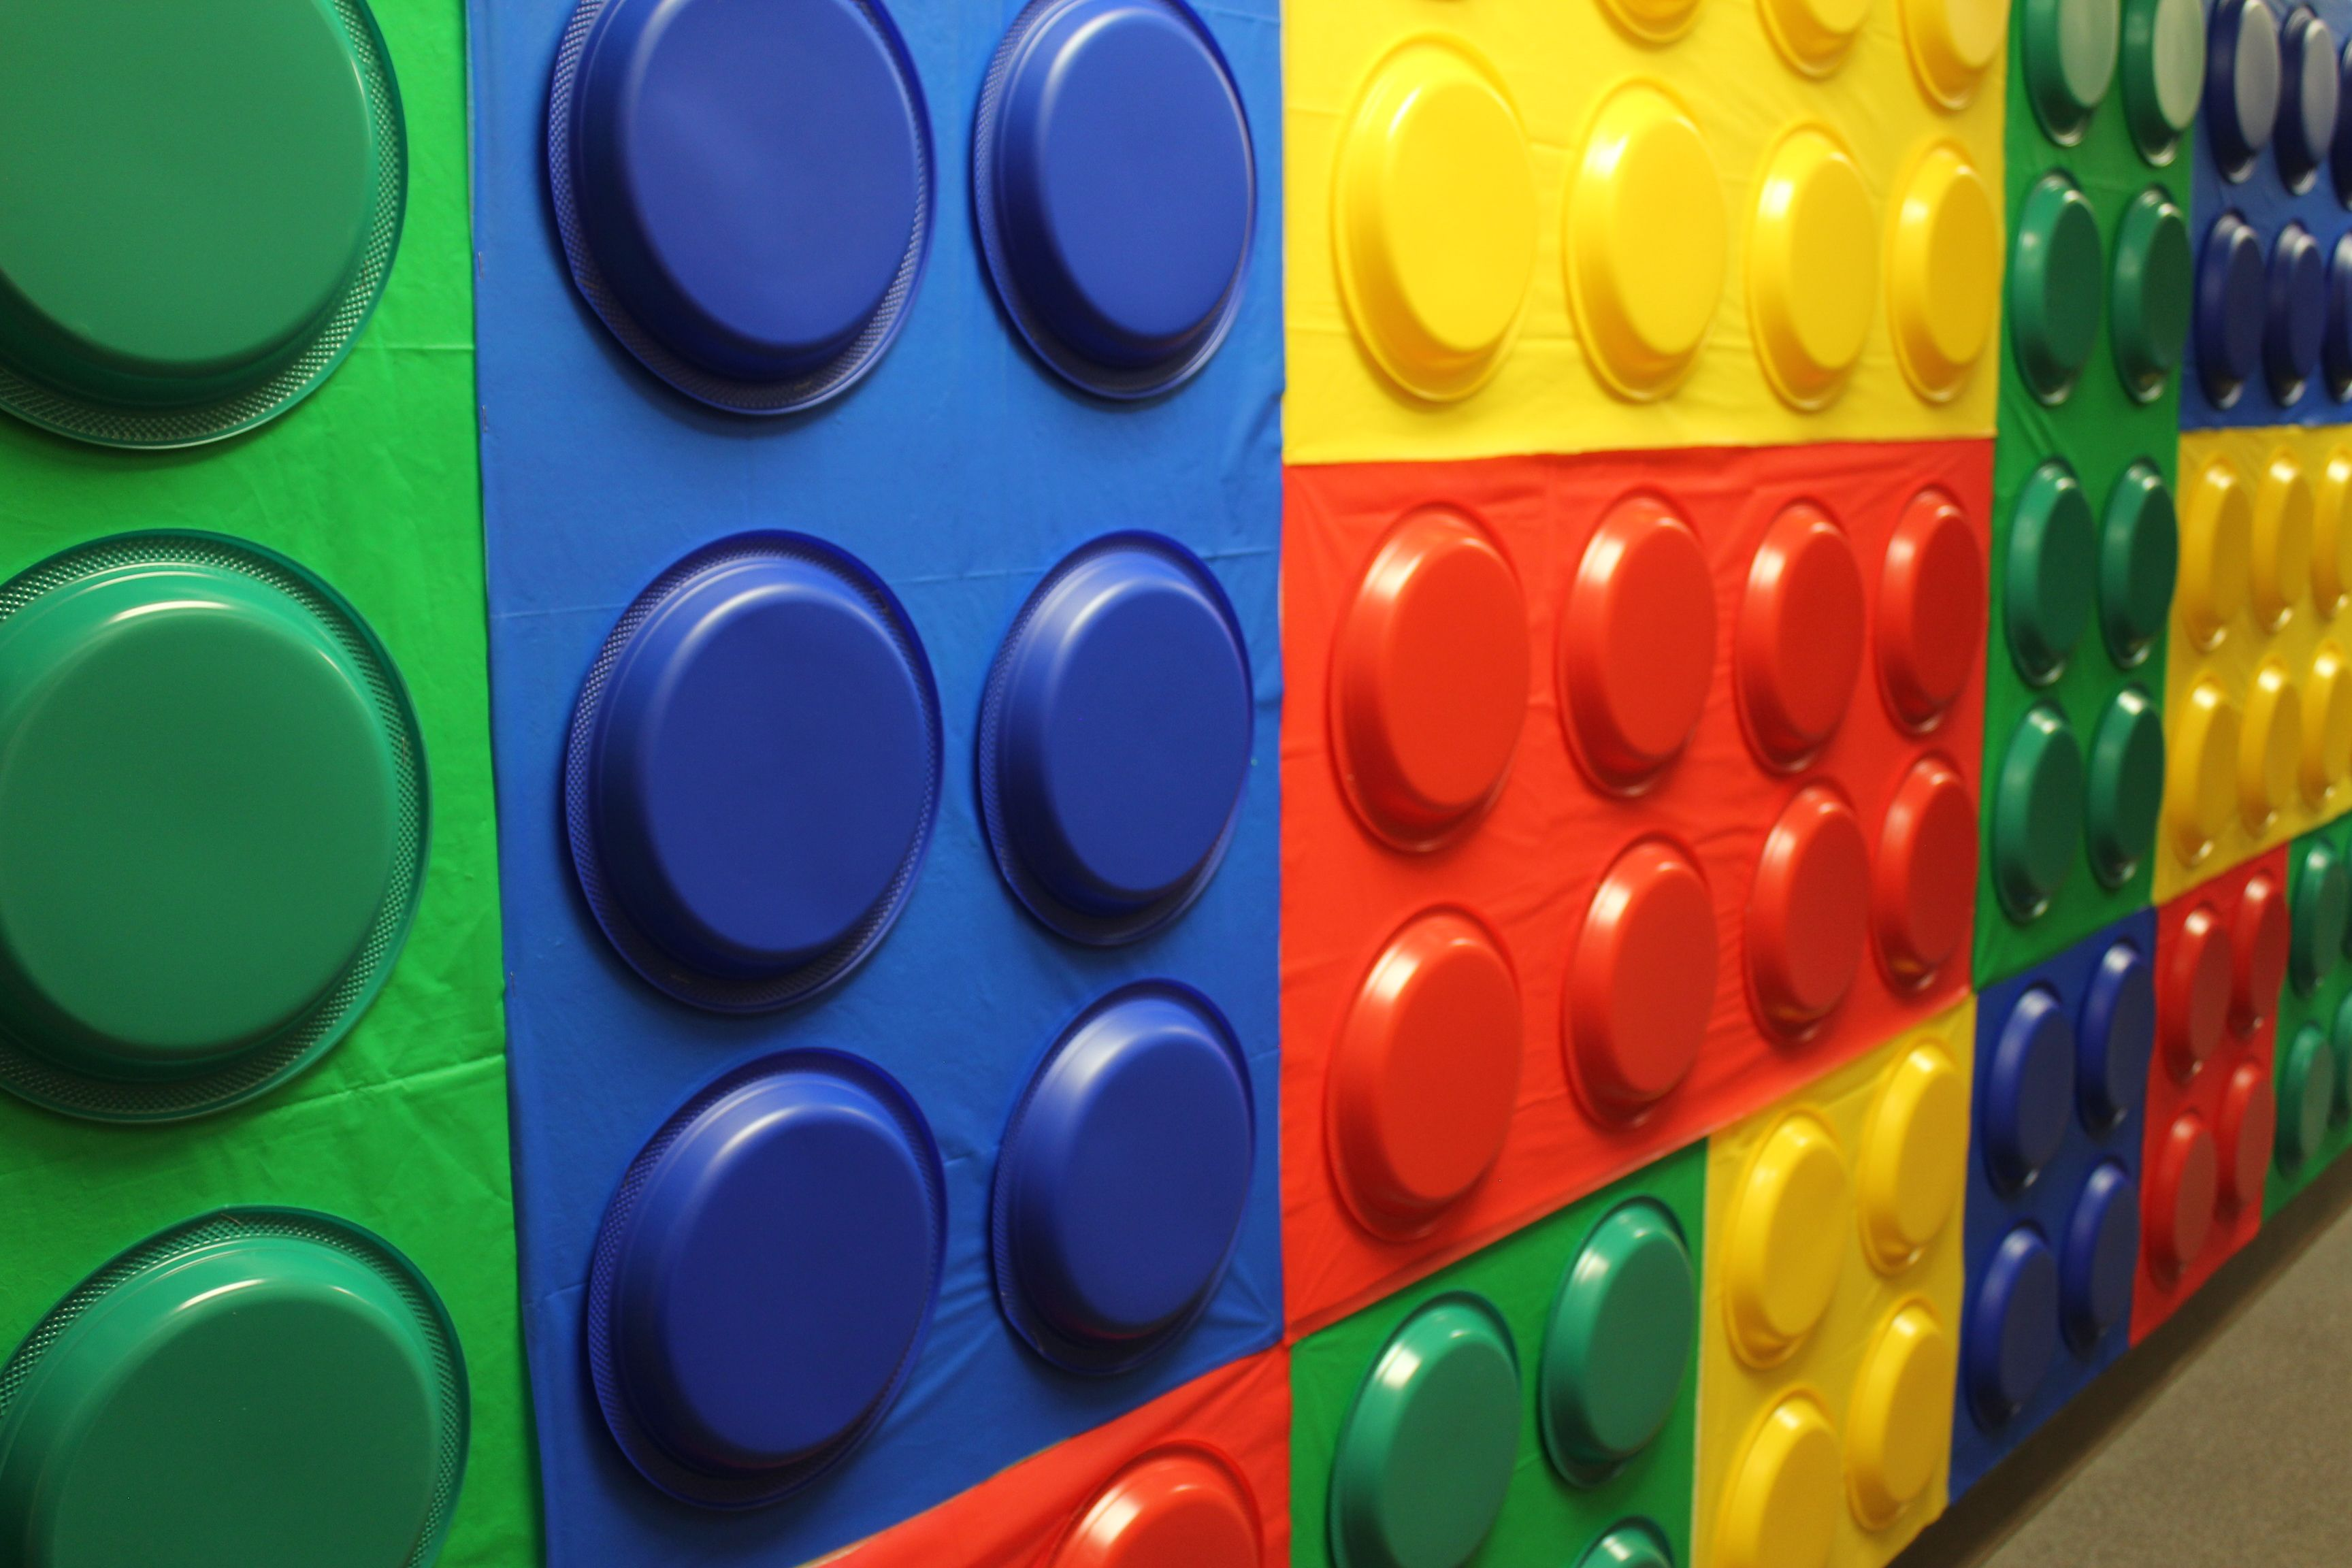 Lego Wall Using Plastic Table Clothes And Plastic Dinner Plates Lego Decorations Lego Classroom Theme Lego Wall